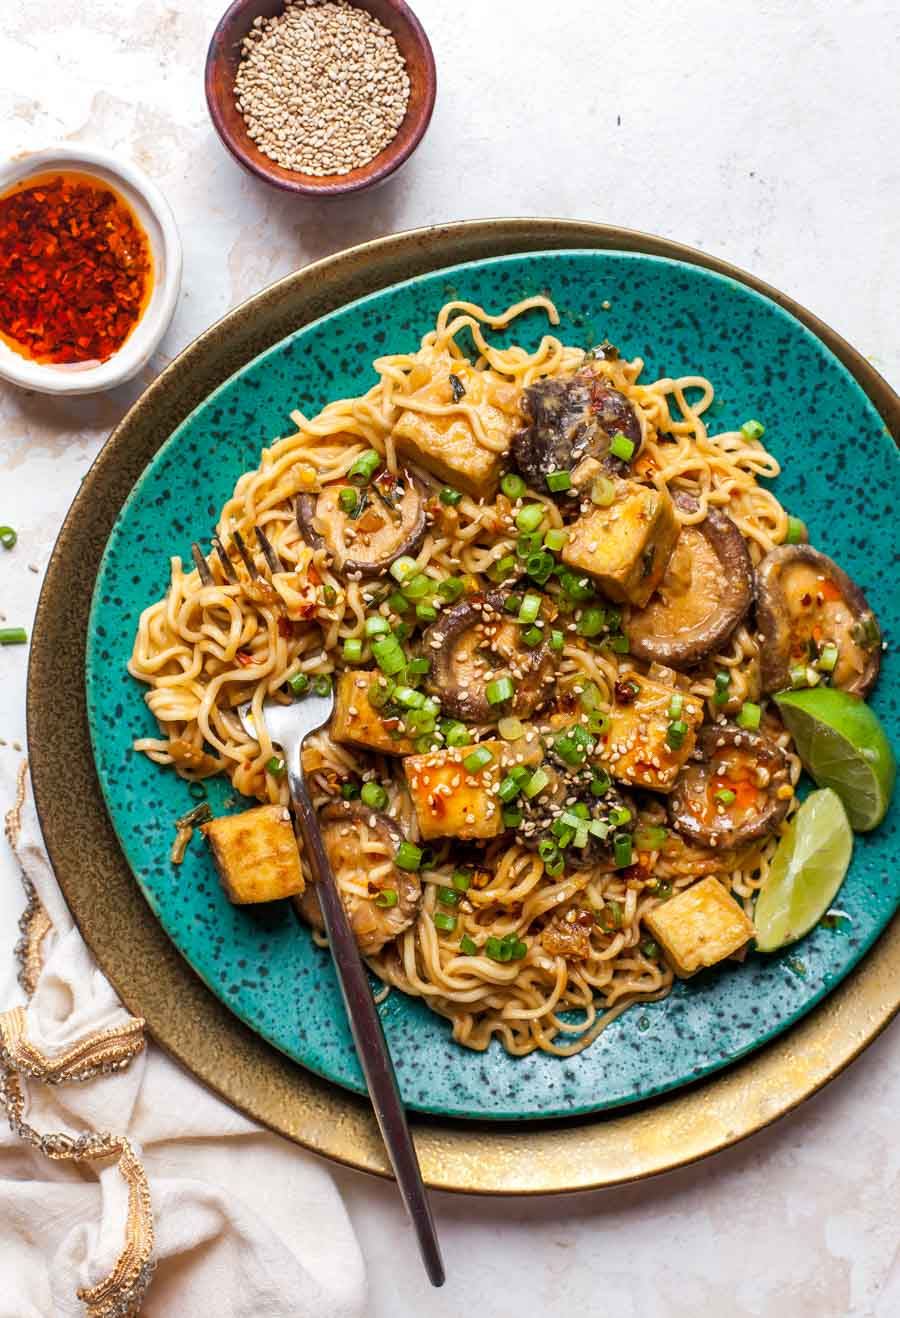 Homemade ramen noodles with sesame sauce and crispy tofu